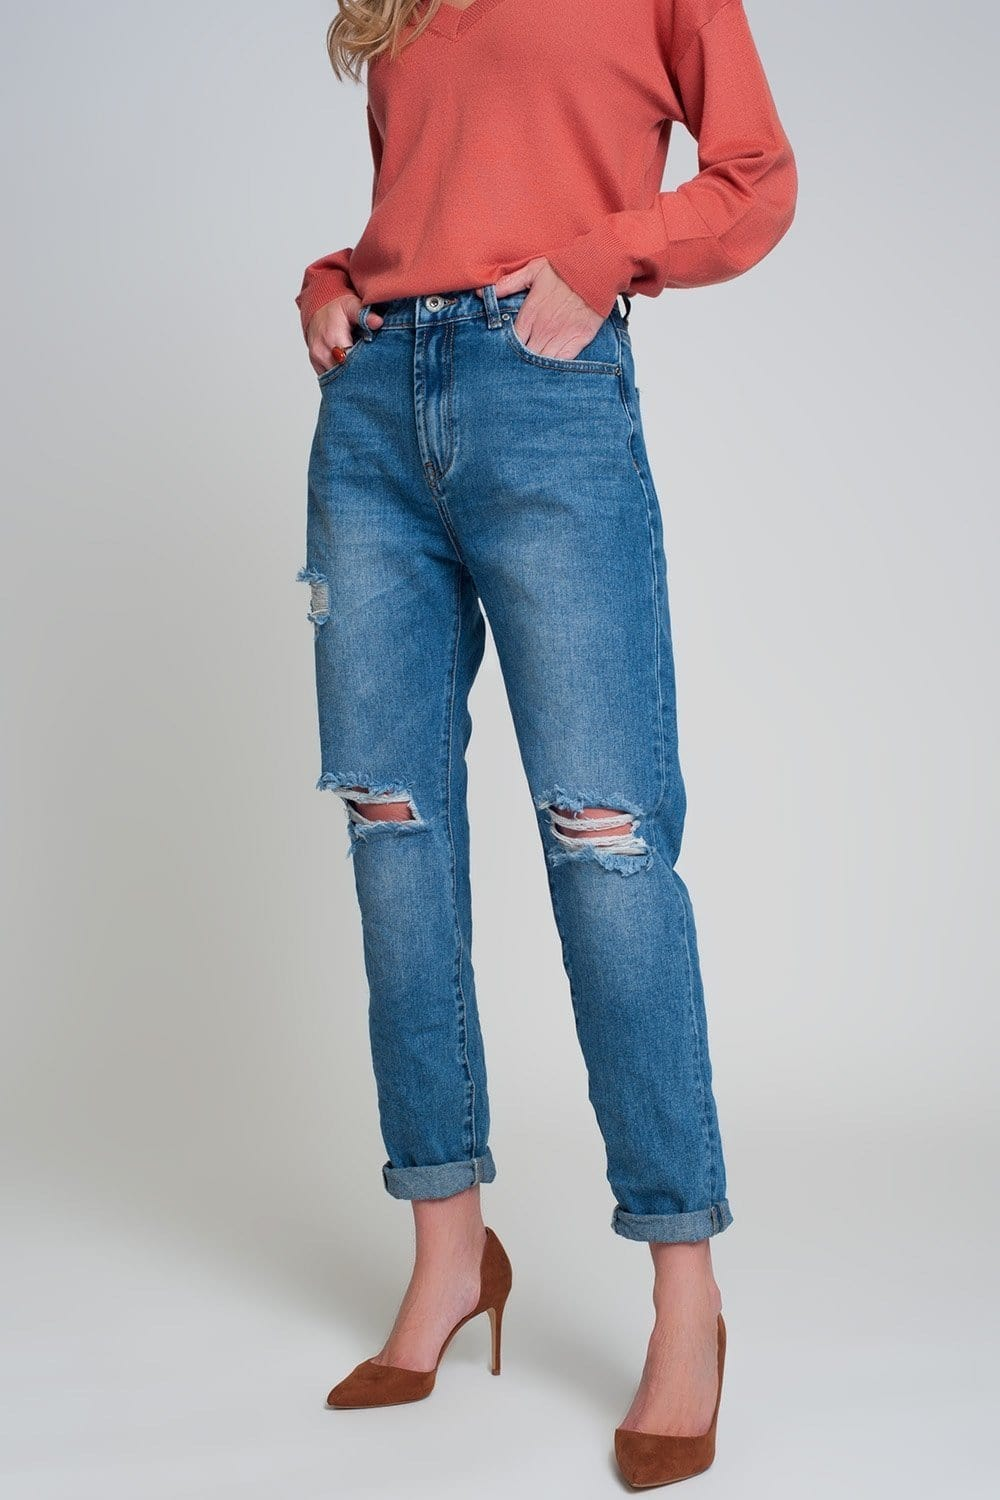 Q2 High waist mom jeans with ripped knees in dark wash blue